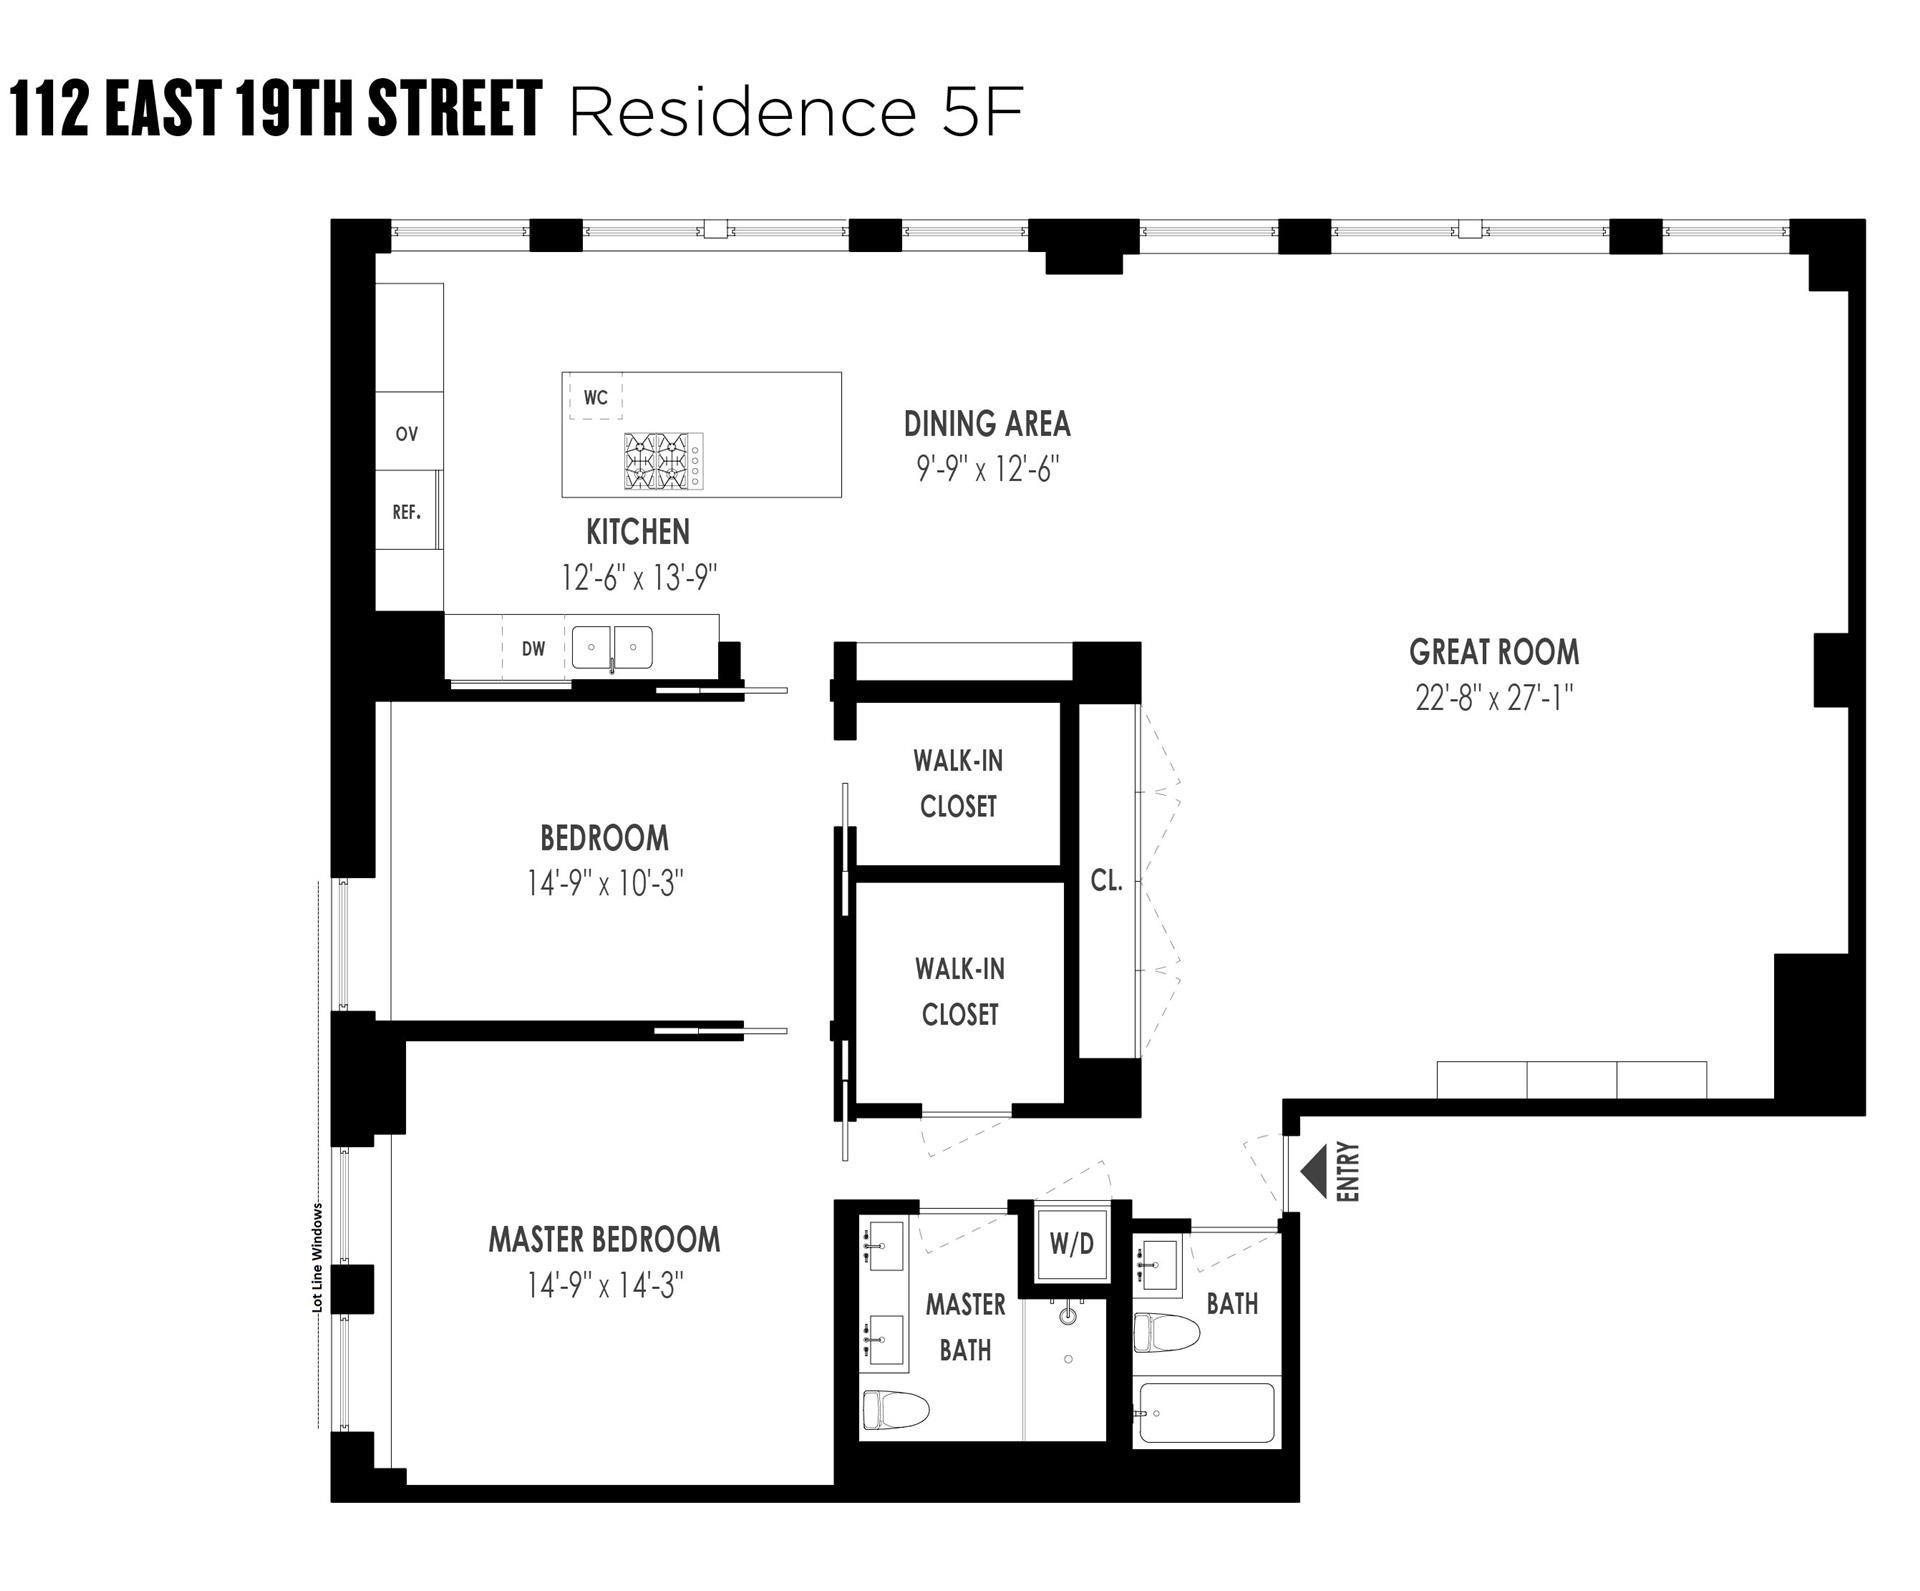 Floor plan of 112 East 19th St, 5F - Gramercy - Union Square, New York